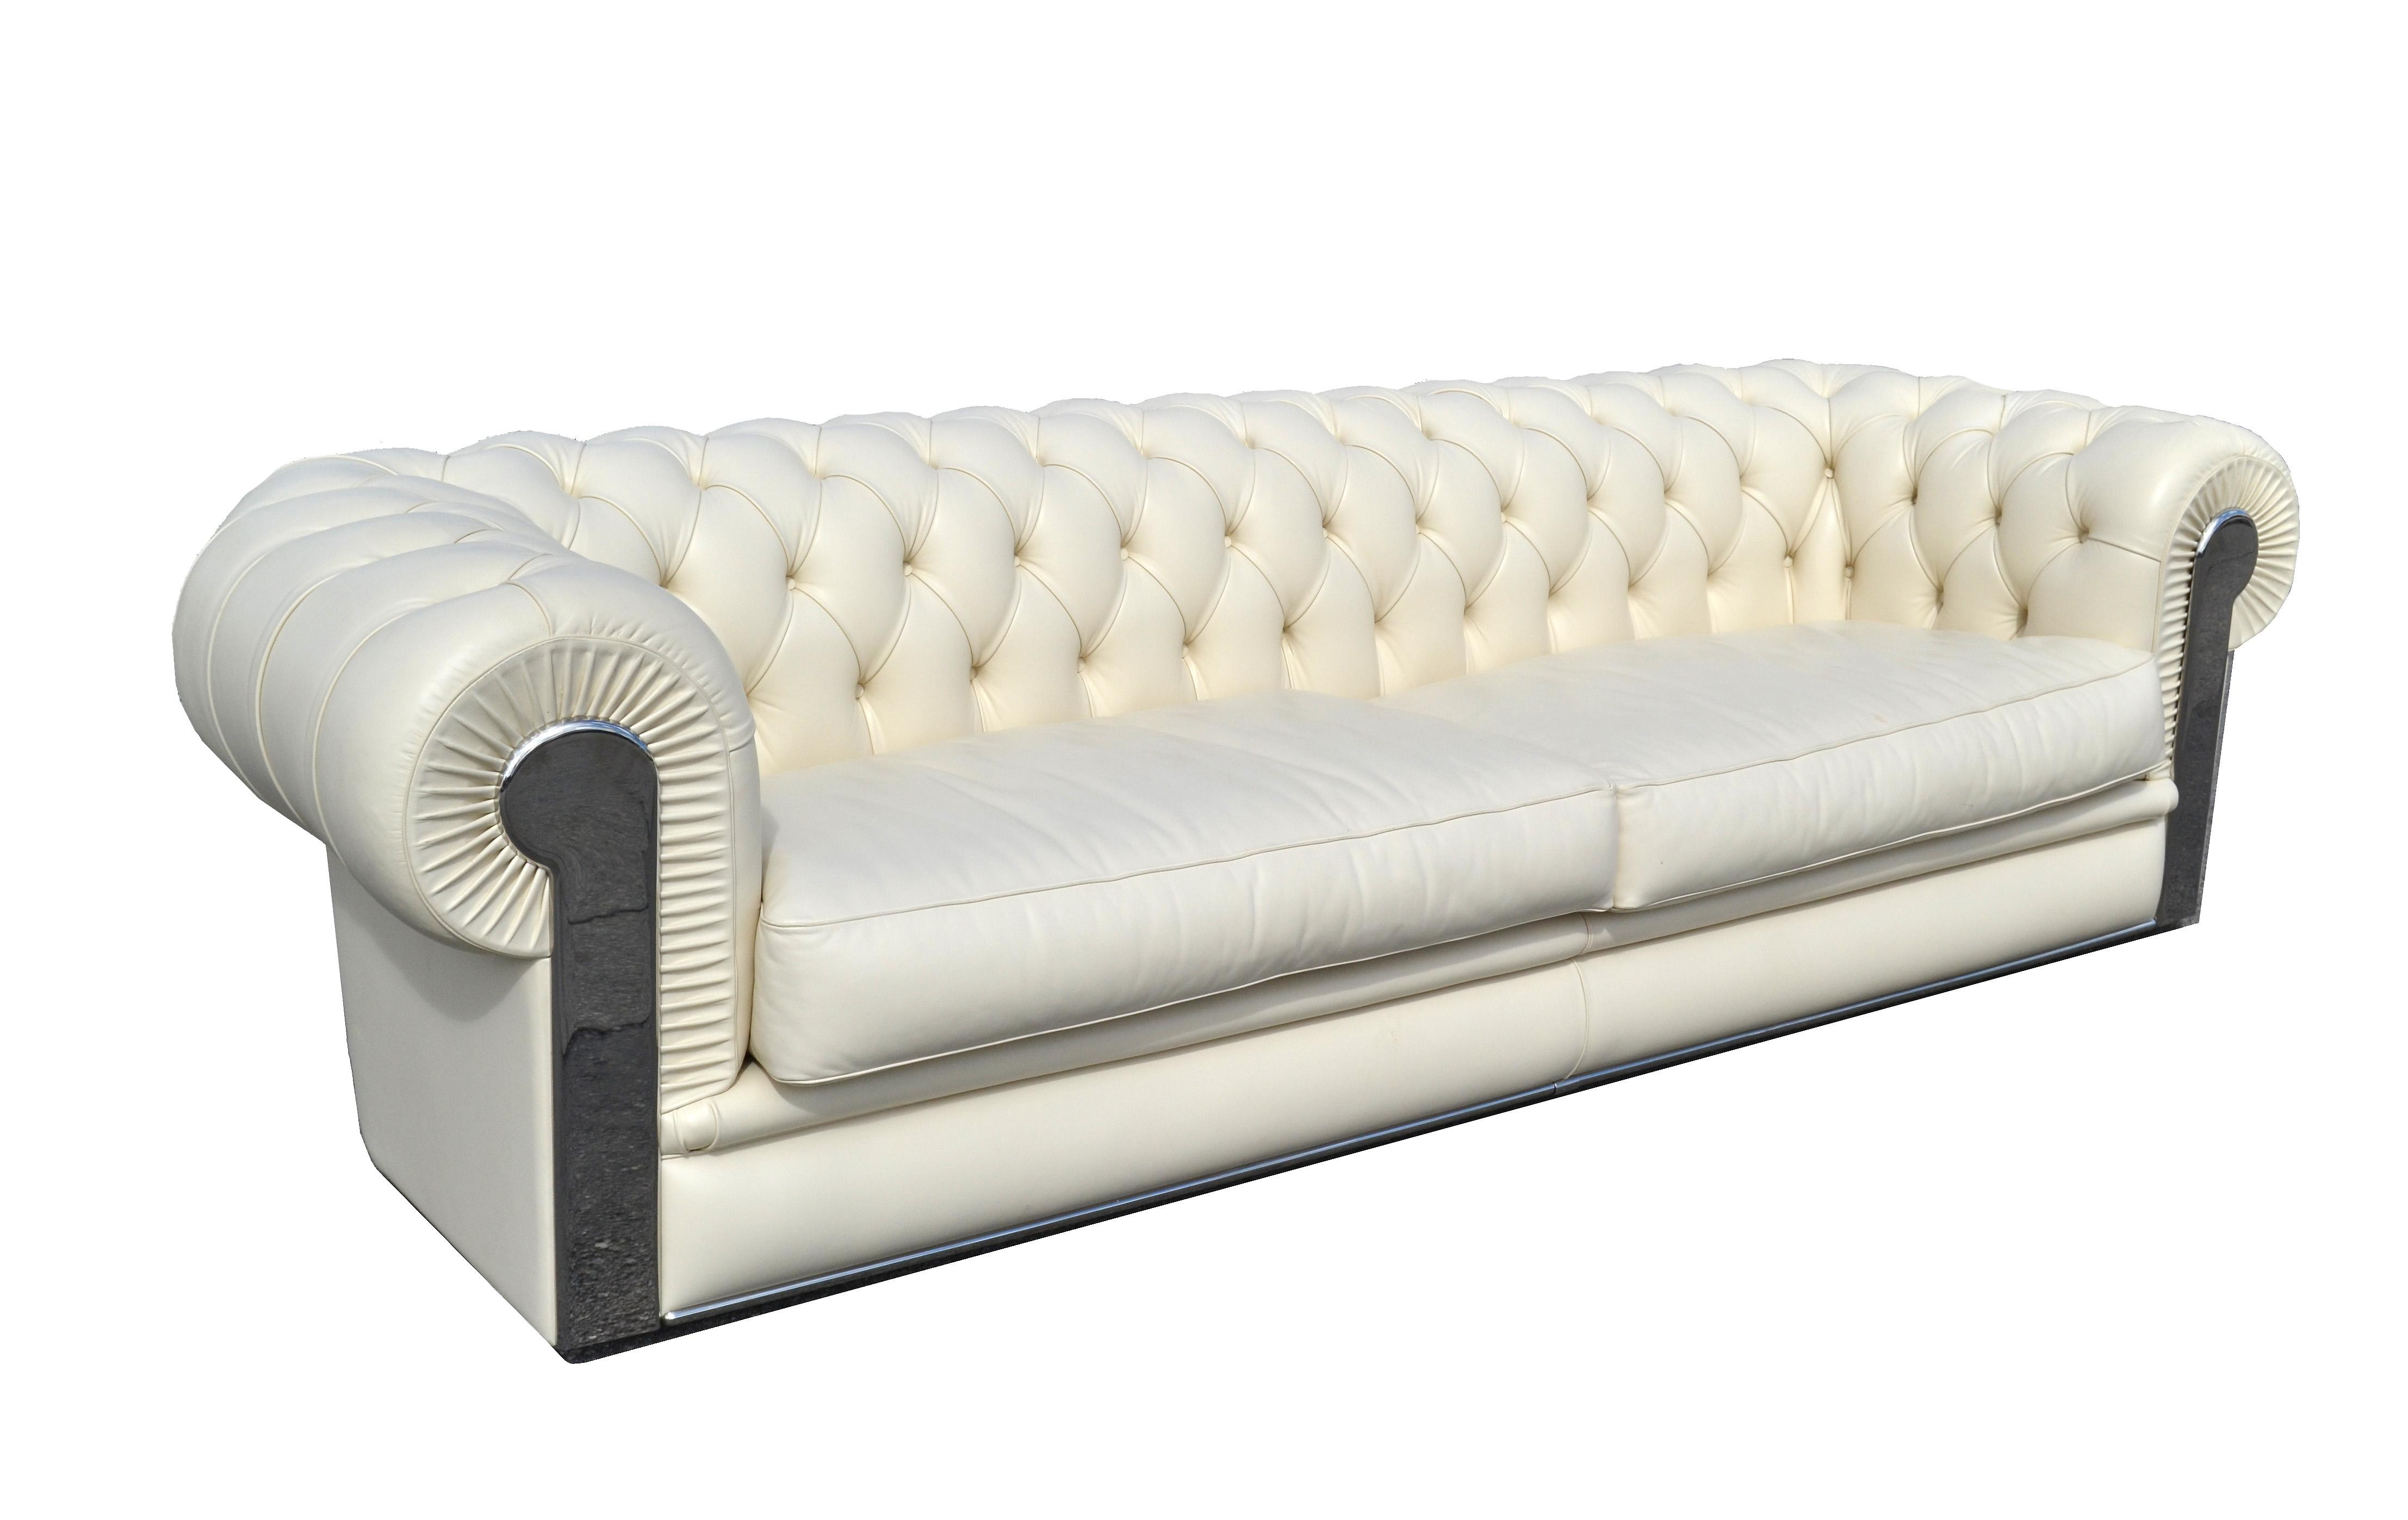 Fendi Casa Albino Tufted Leather Sofa In Chesterfield Style For Sale    Image 11 Of 11